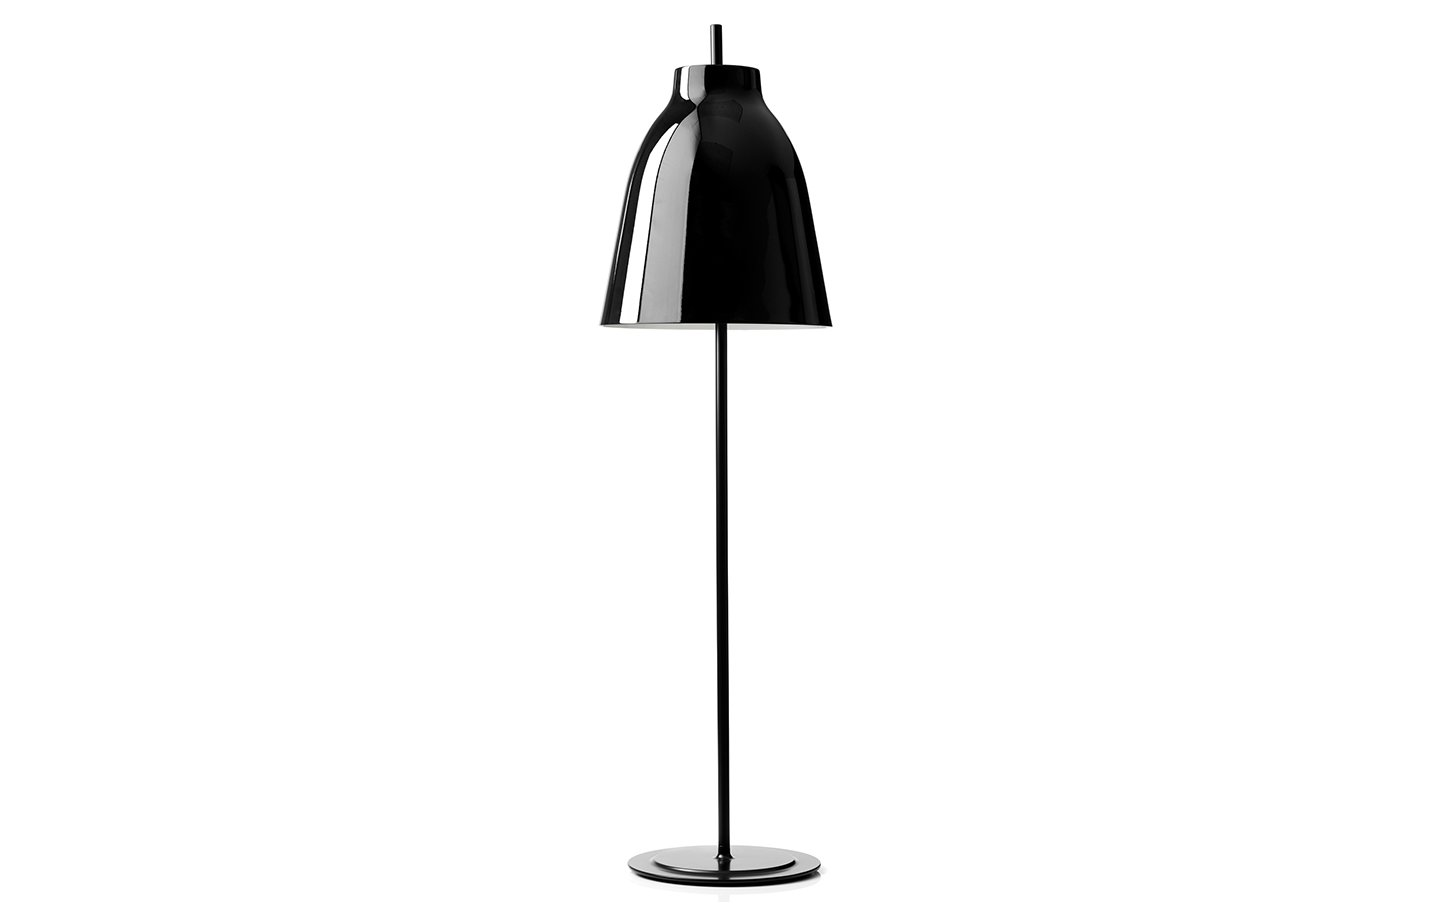 Caravaggio floor lamp – Black